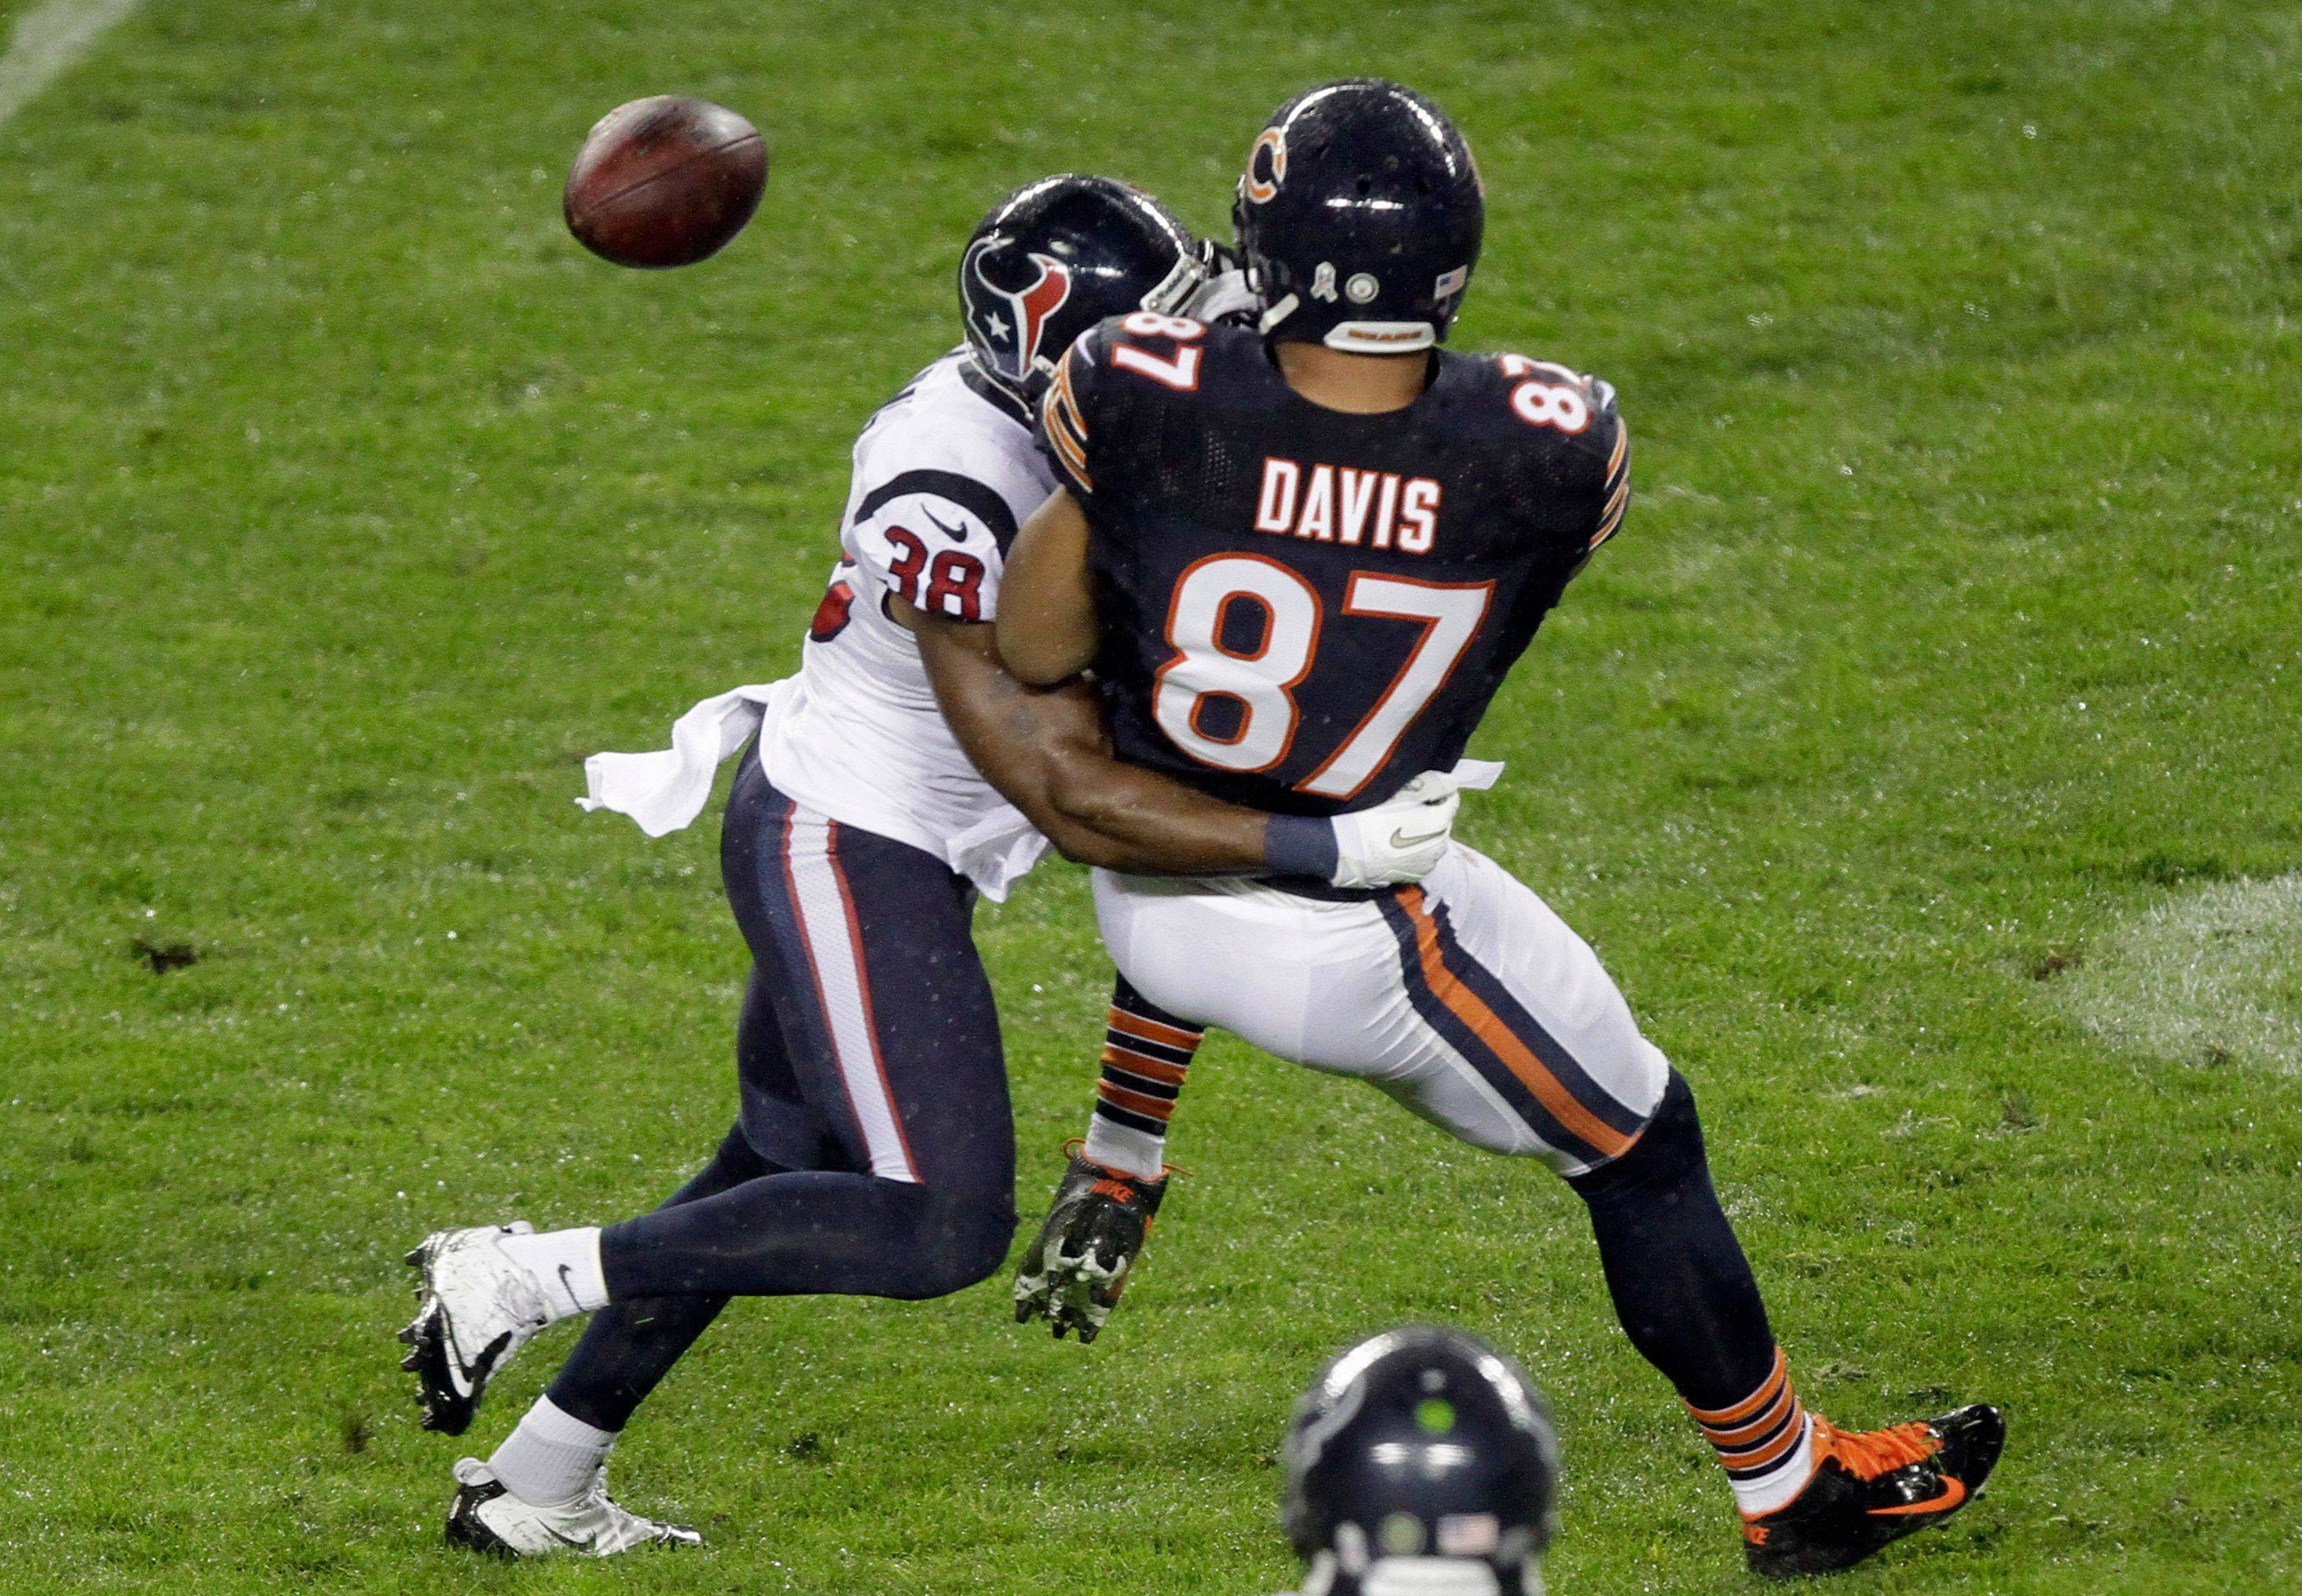 Kellen Davis fumbles as he is crunched by Texans safety Danieal Manning on the first play of last week's Bears loss at Soldier Field.